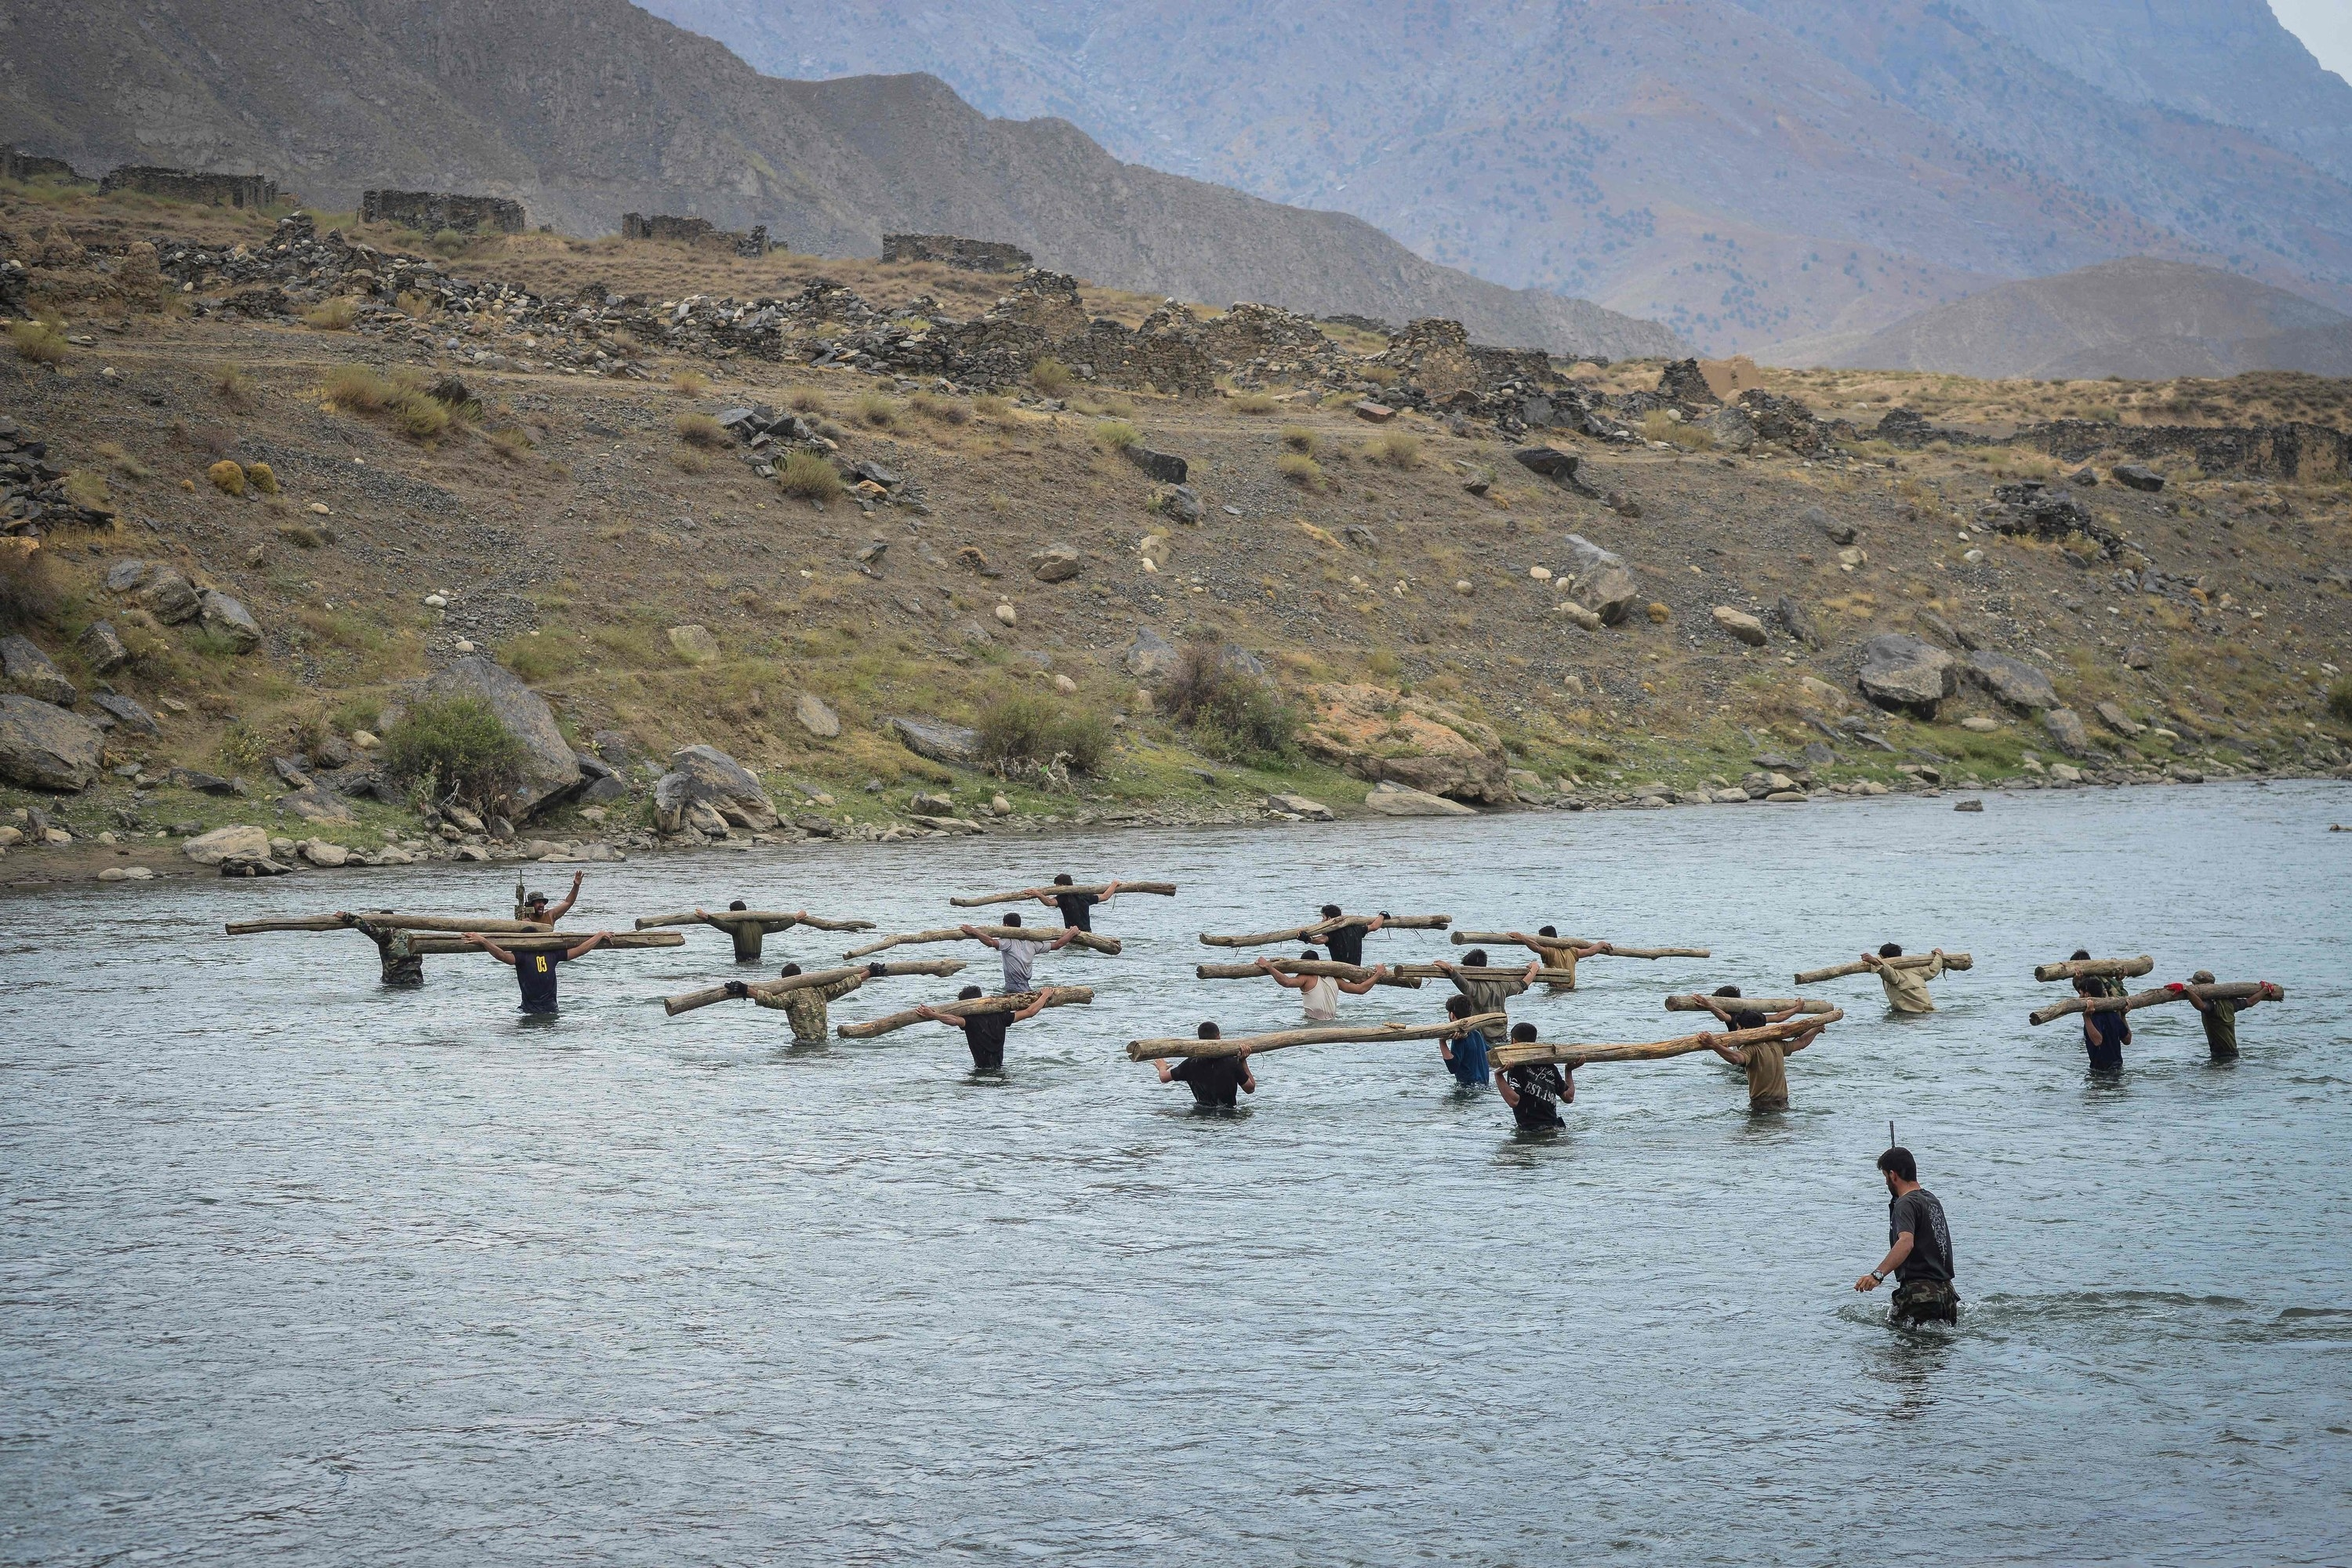 Anti-Taliban resistance soldiers train by carrying logs as they walk through water